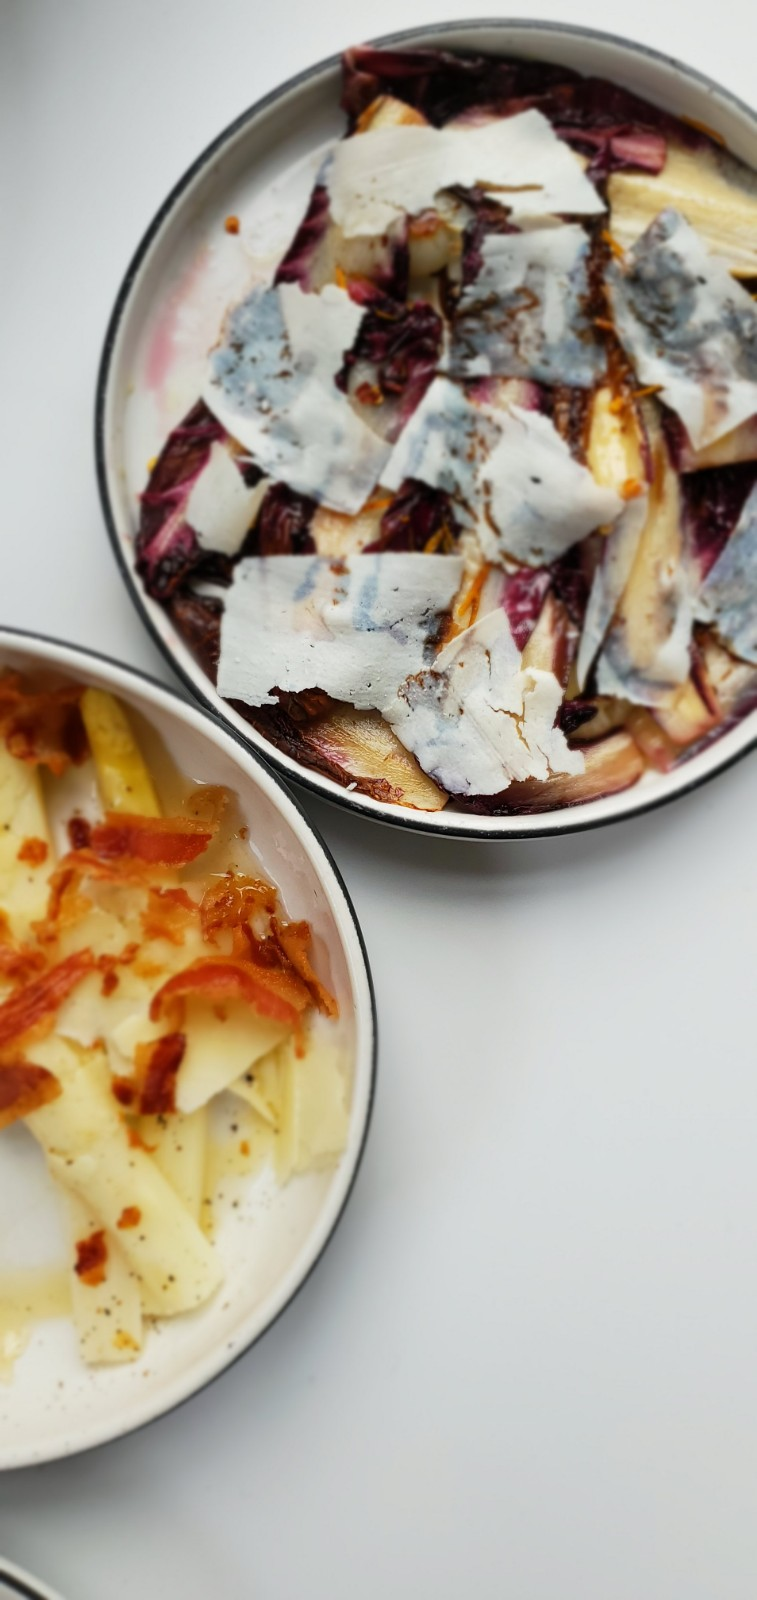 White asparagus and radicchio